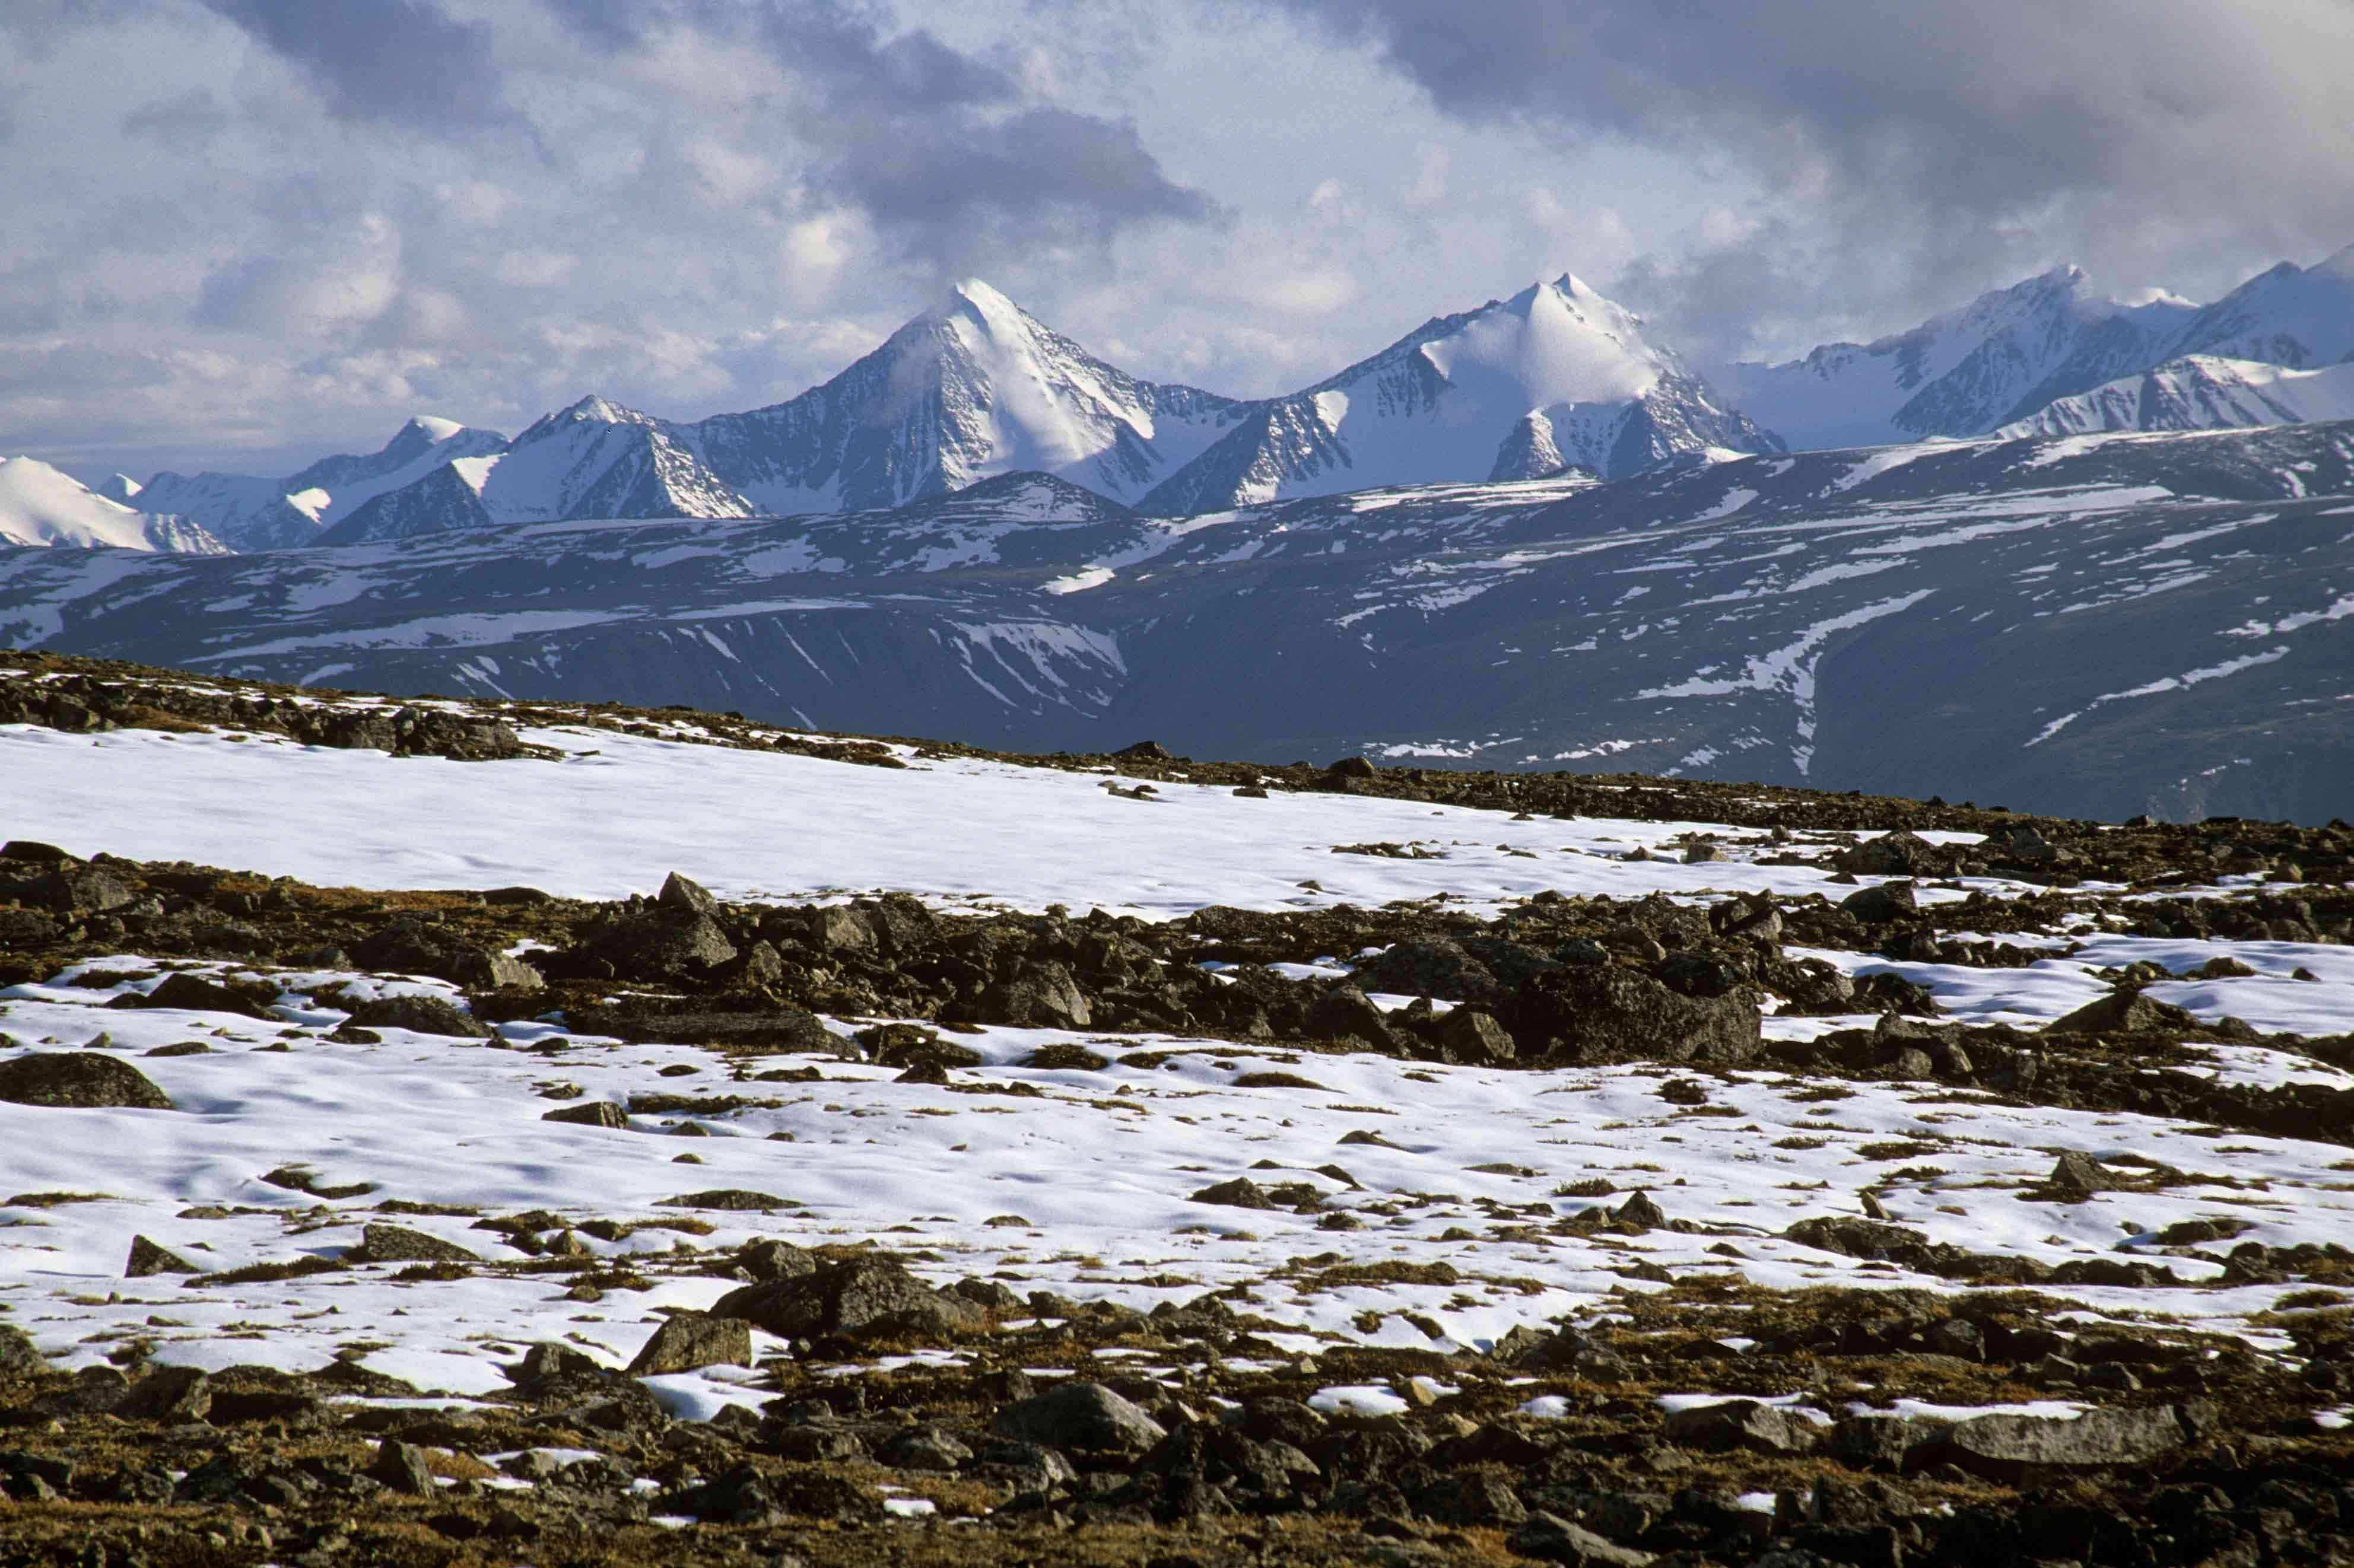 tundra image of a best view of tundra Landscapes